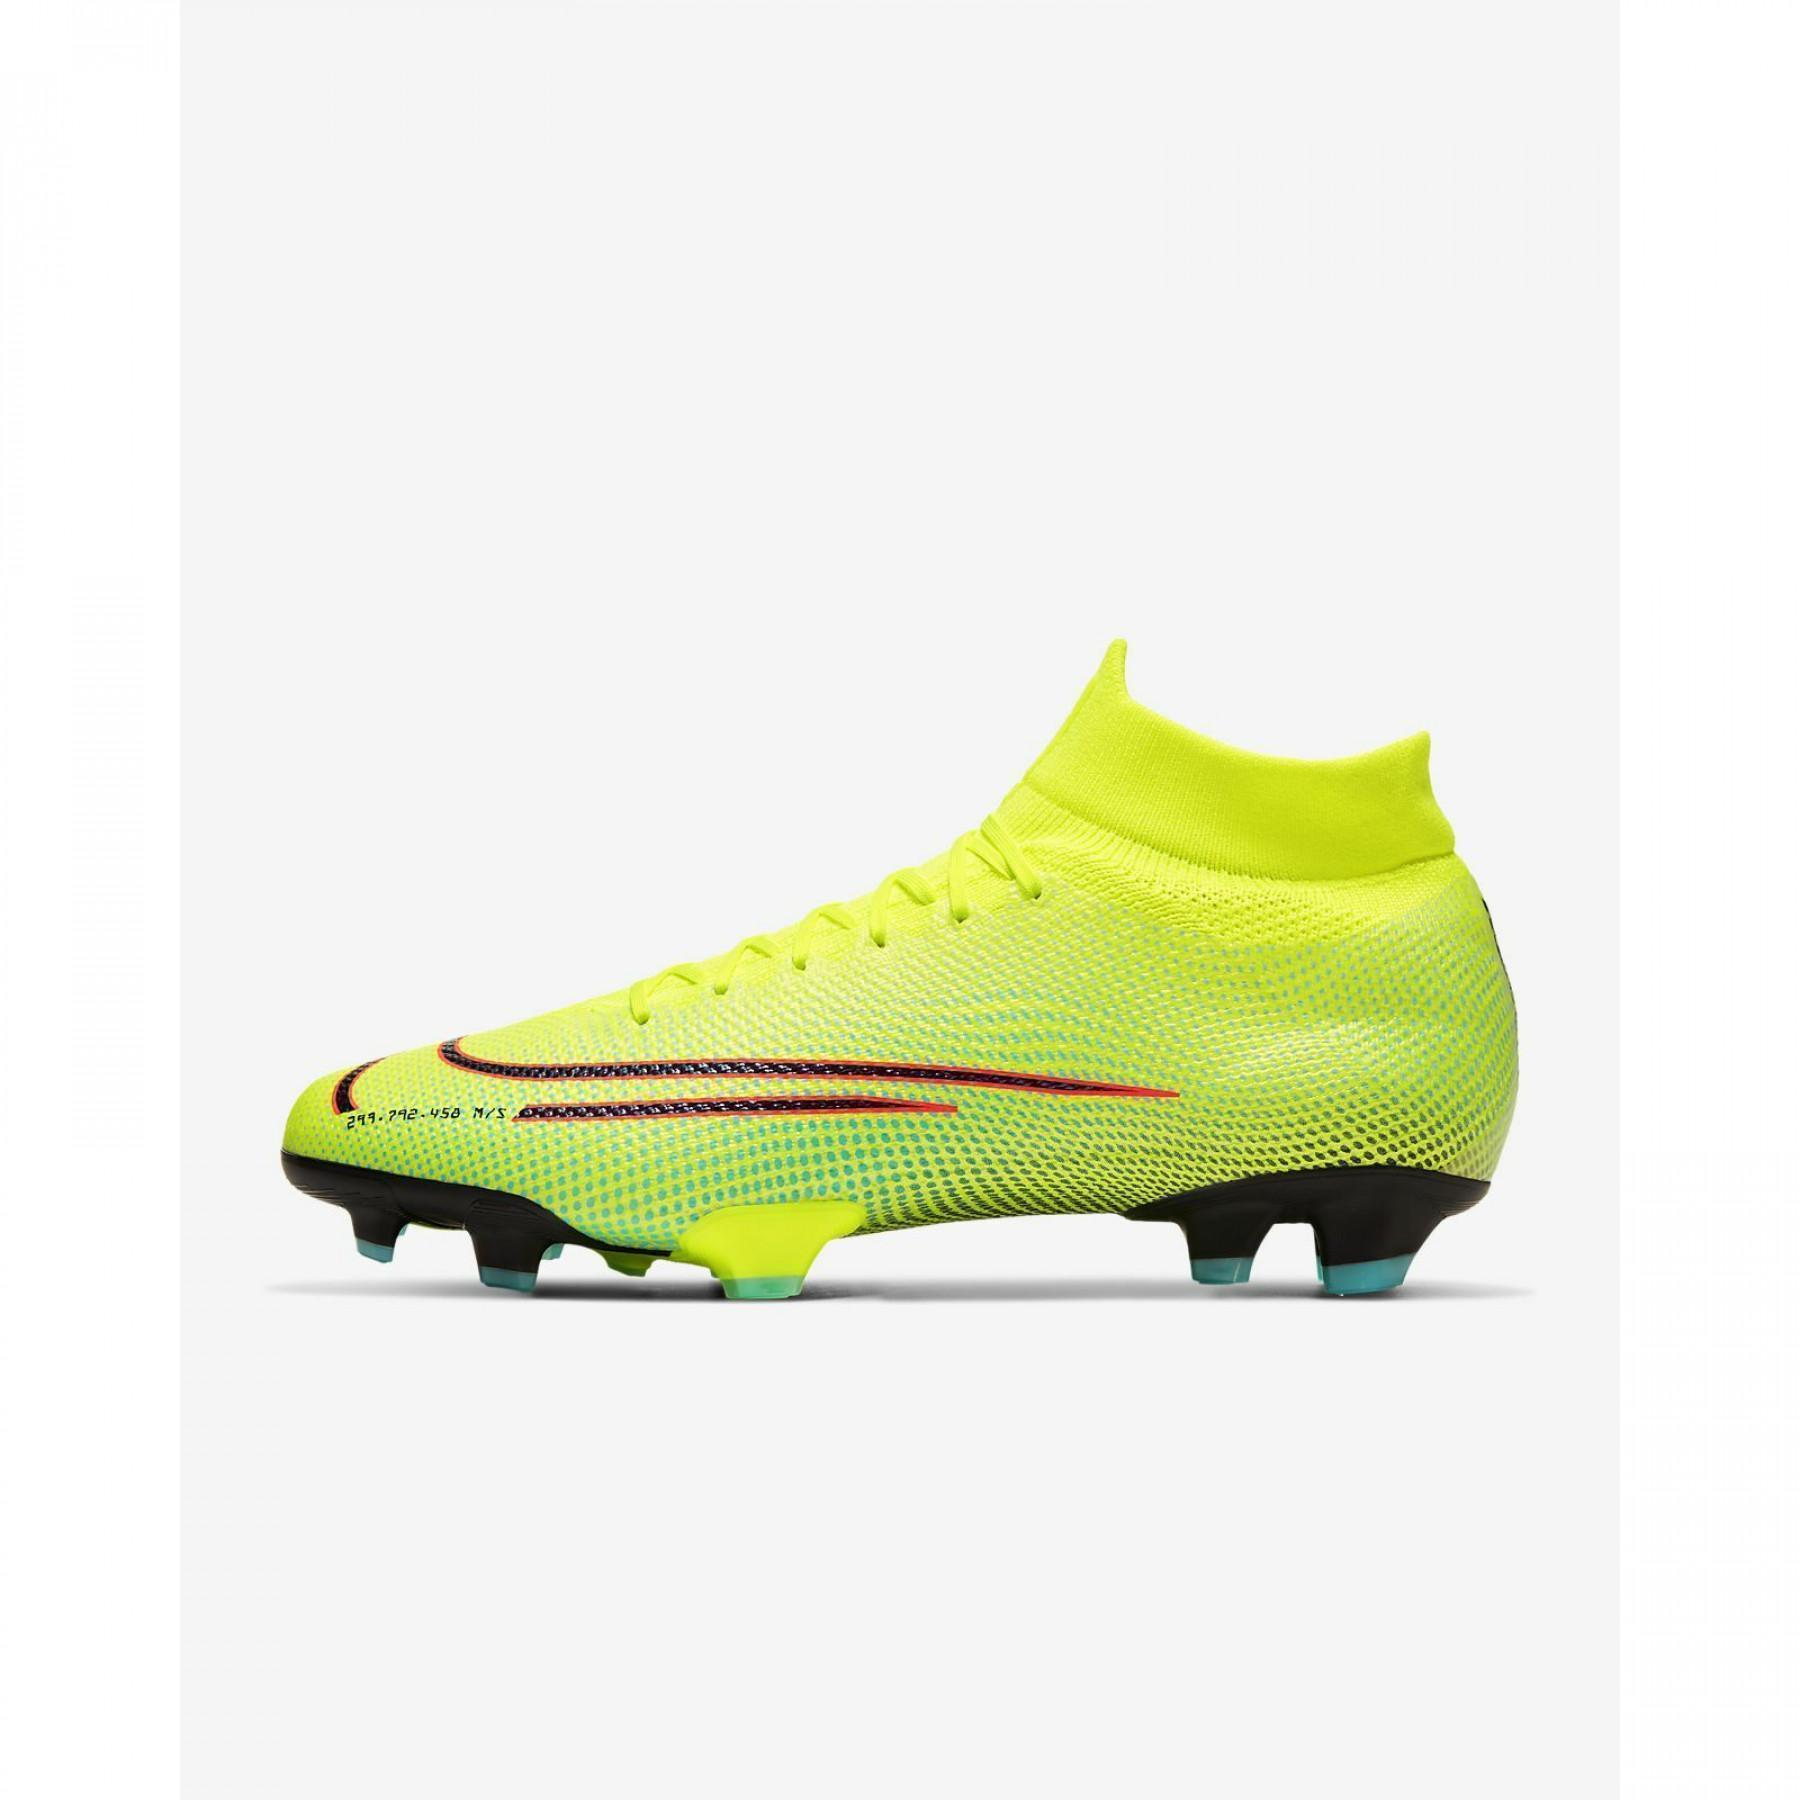 Chaussures Nike Mercurial Superfly 7 Pro MDS FG